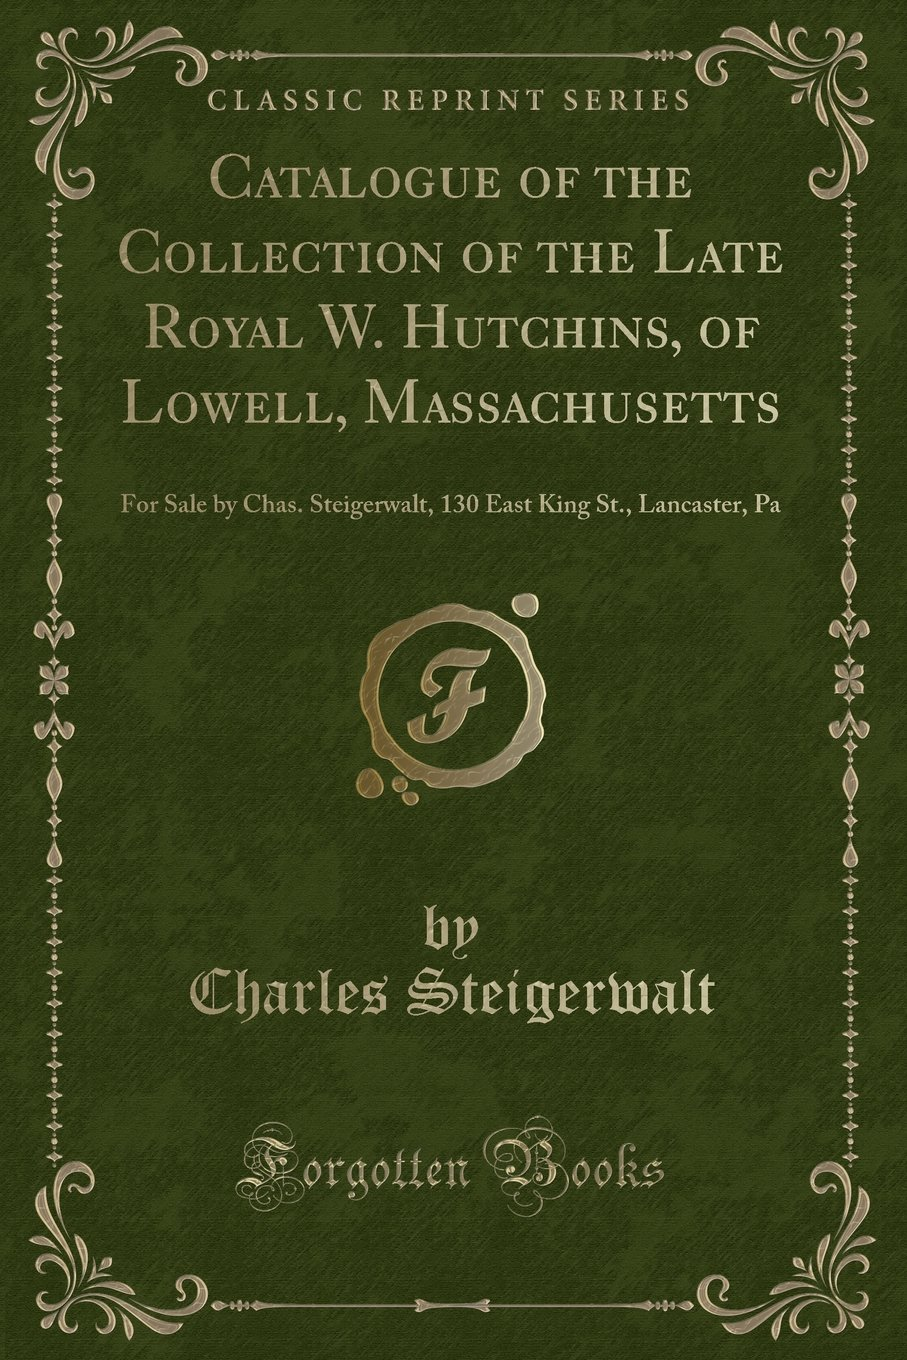 Download Catalogue of the Collection of the Late Royal W. Hutchins, of Lowell, Massachusetts: For Sale by Chas. Steigerwalt, 130 East King St., Lancaster, Pa (Classic Reprint) pdf epub